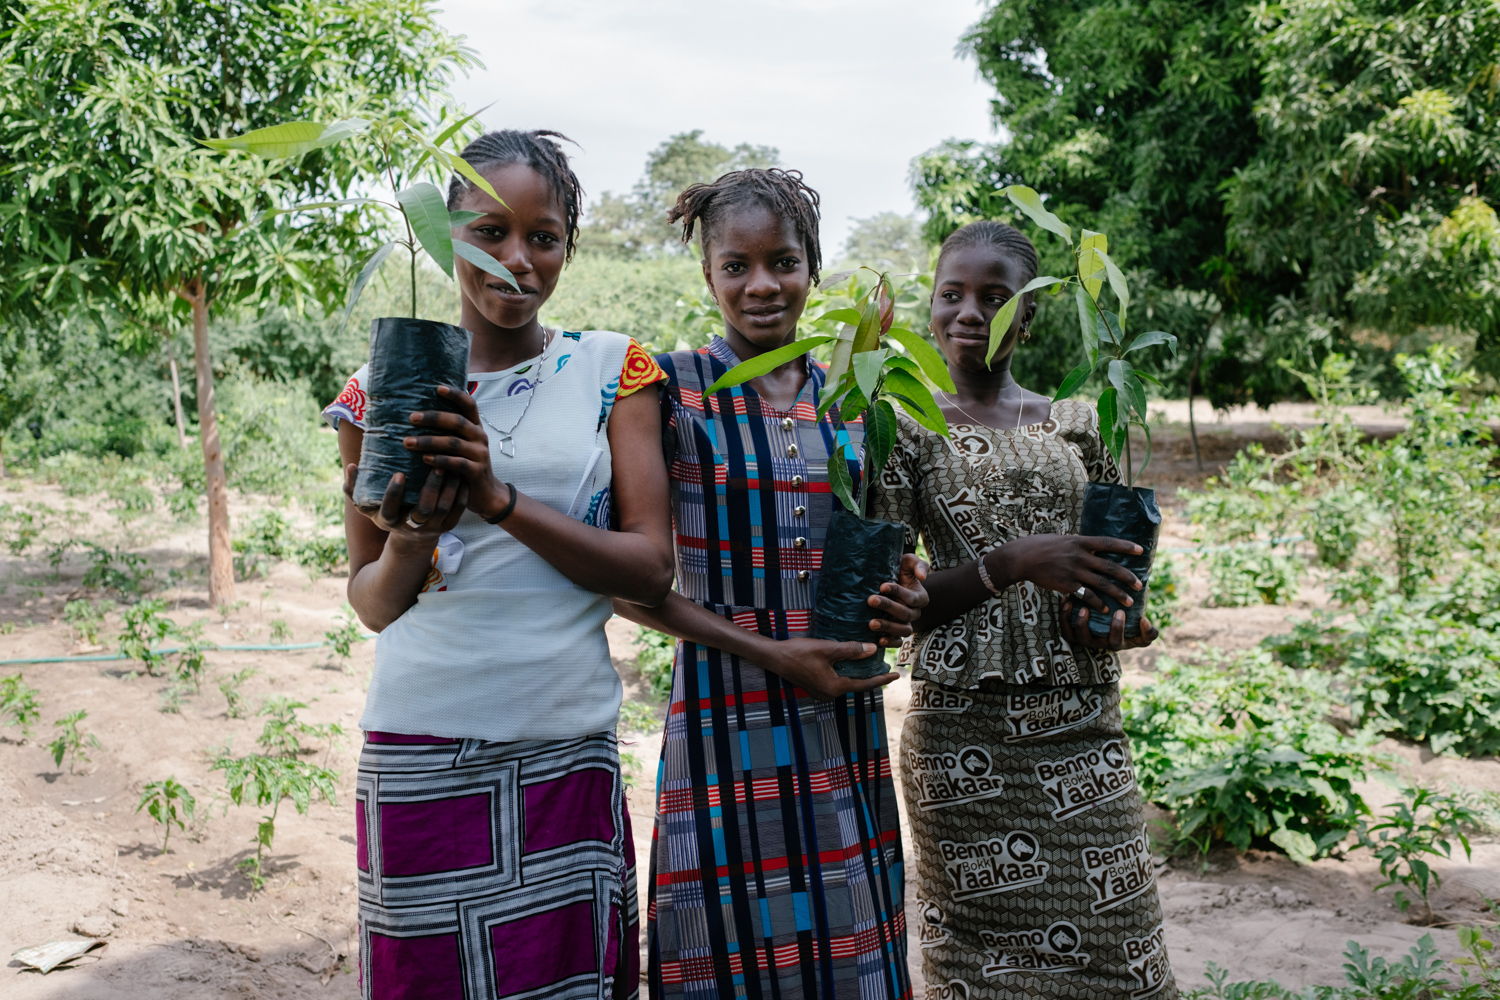 Senegal-Ecosia-Forest-Garden-Agroforestry-trees-climate-change--63-of-103-